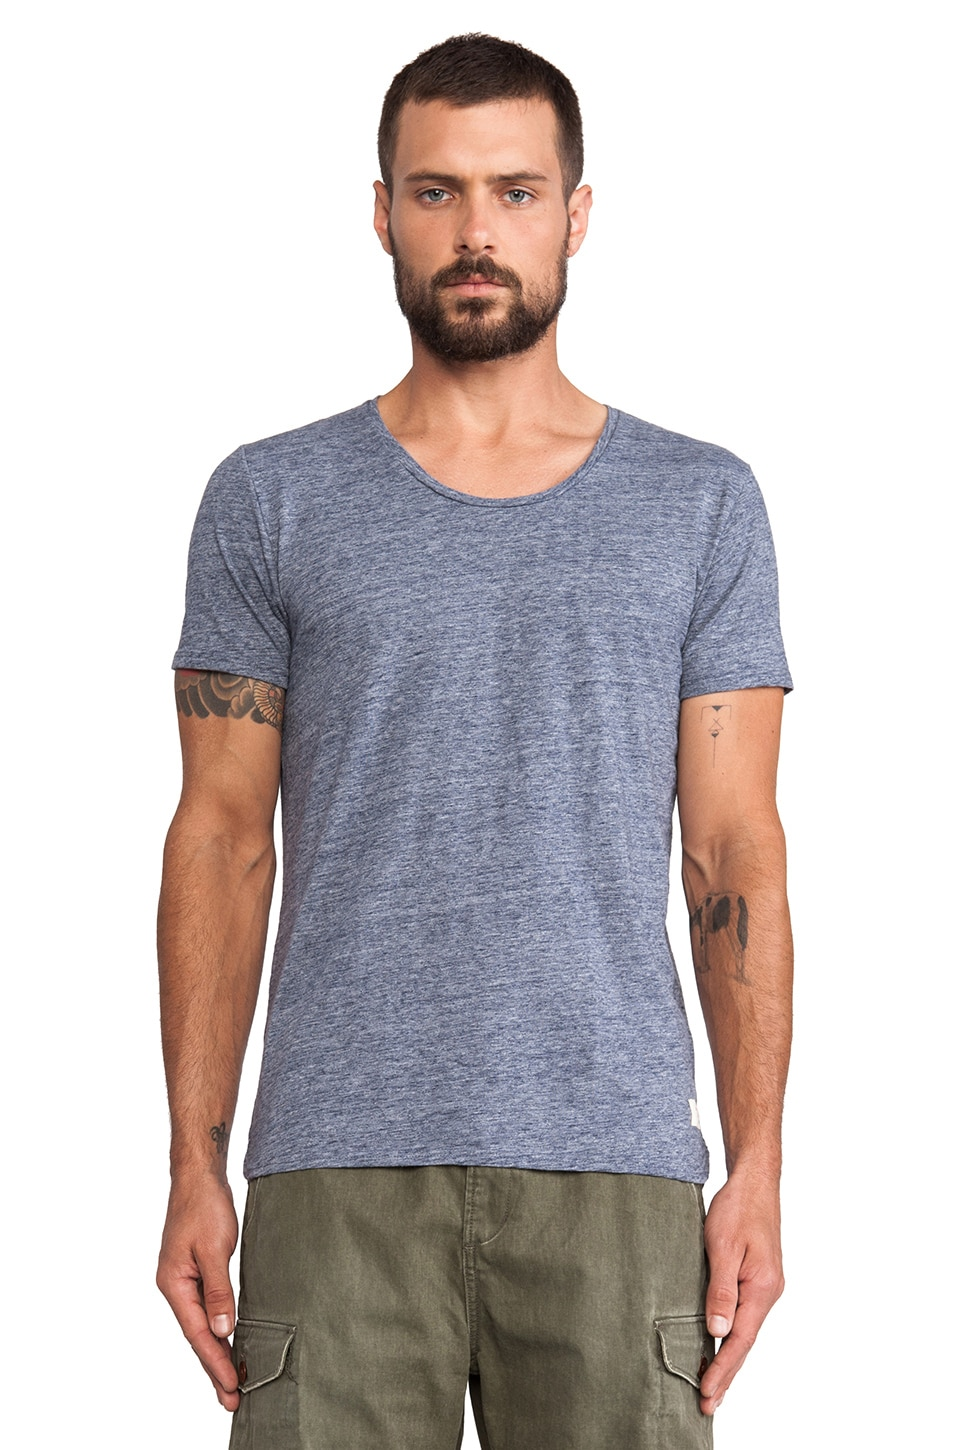 Scotch & Soda Home Alone Crew Neck Tee in Denim Blue Melange